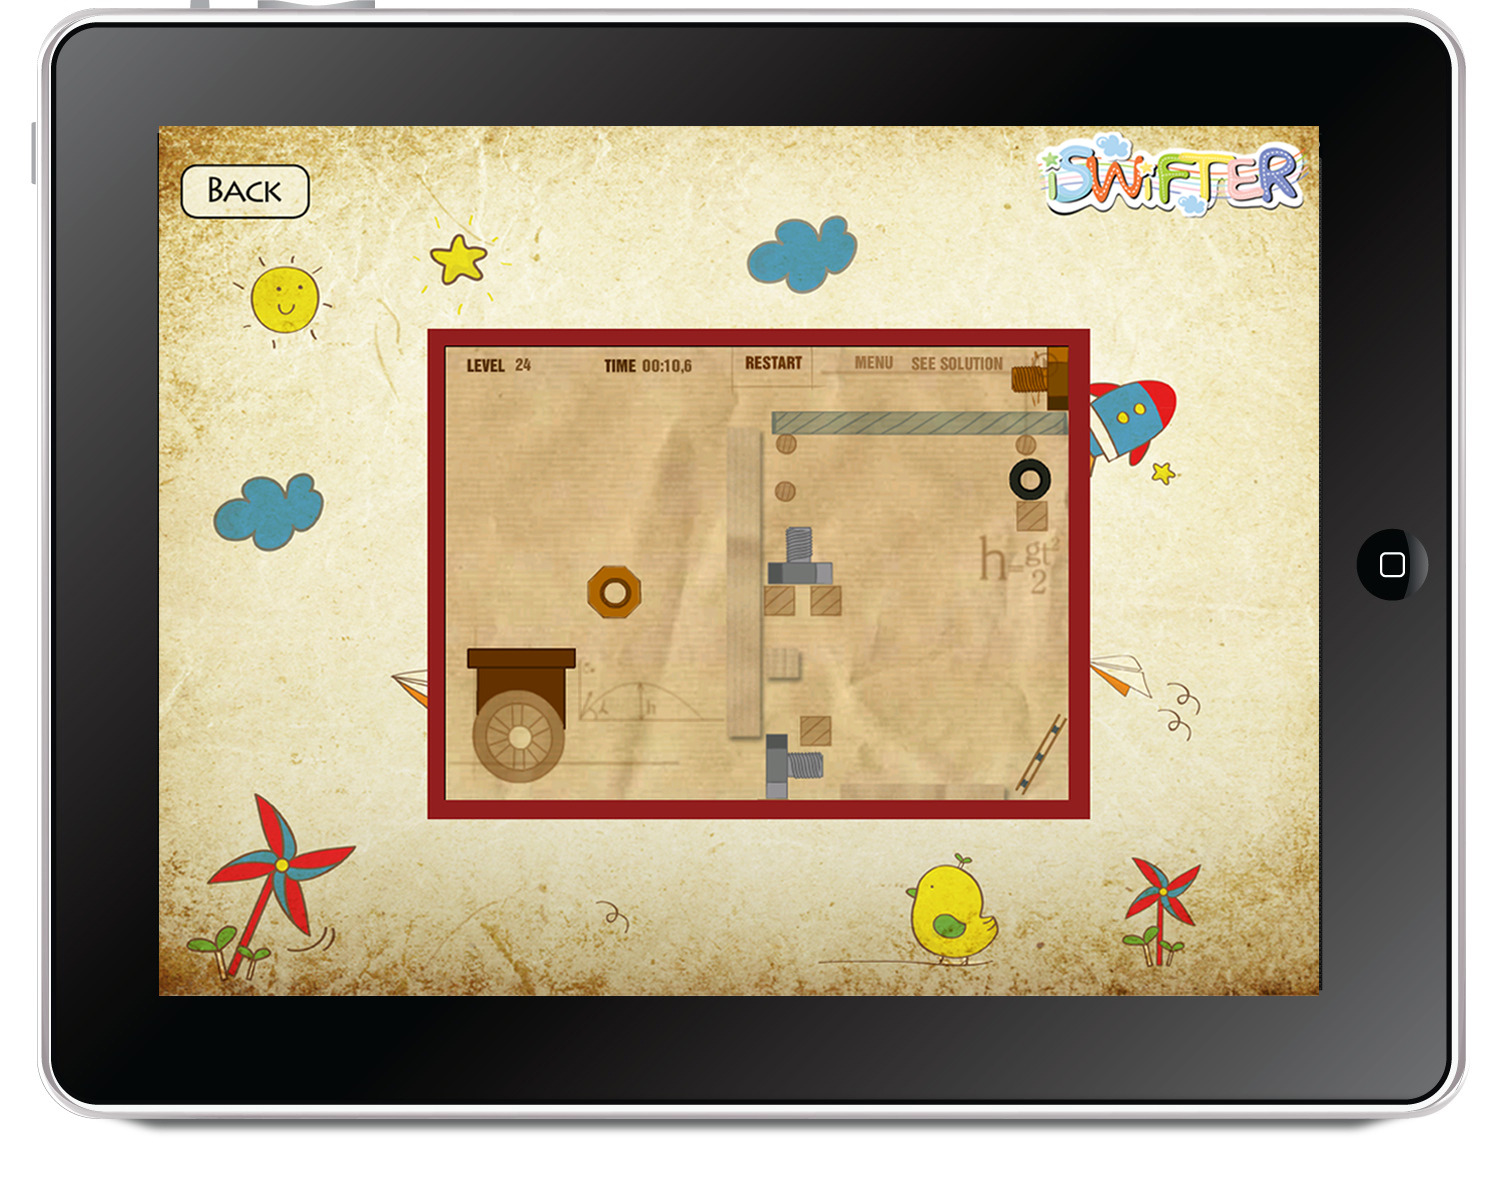 An example of a Flash game playing on an iPad using iSwifter.